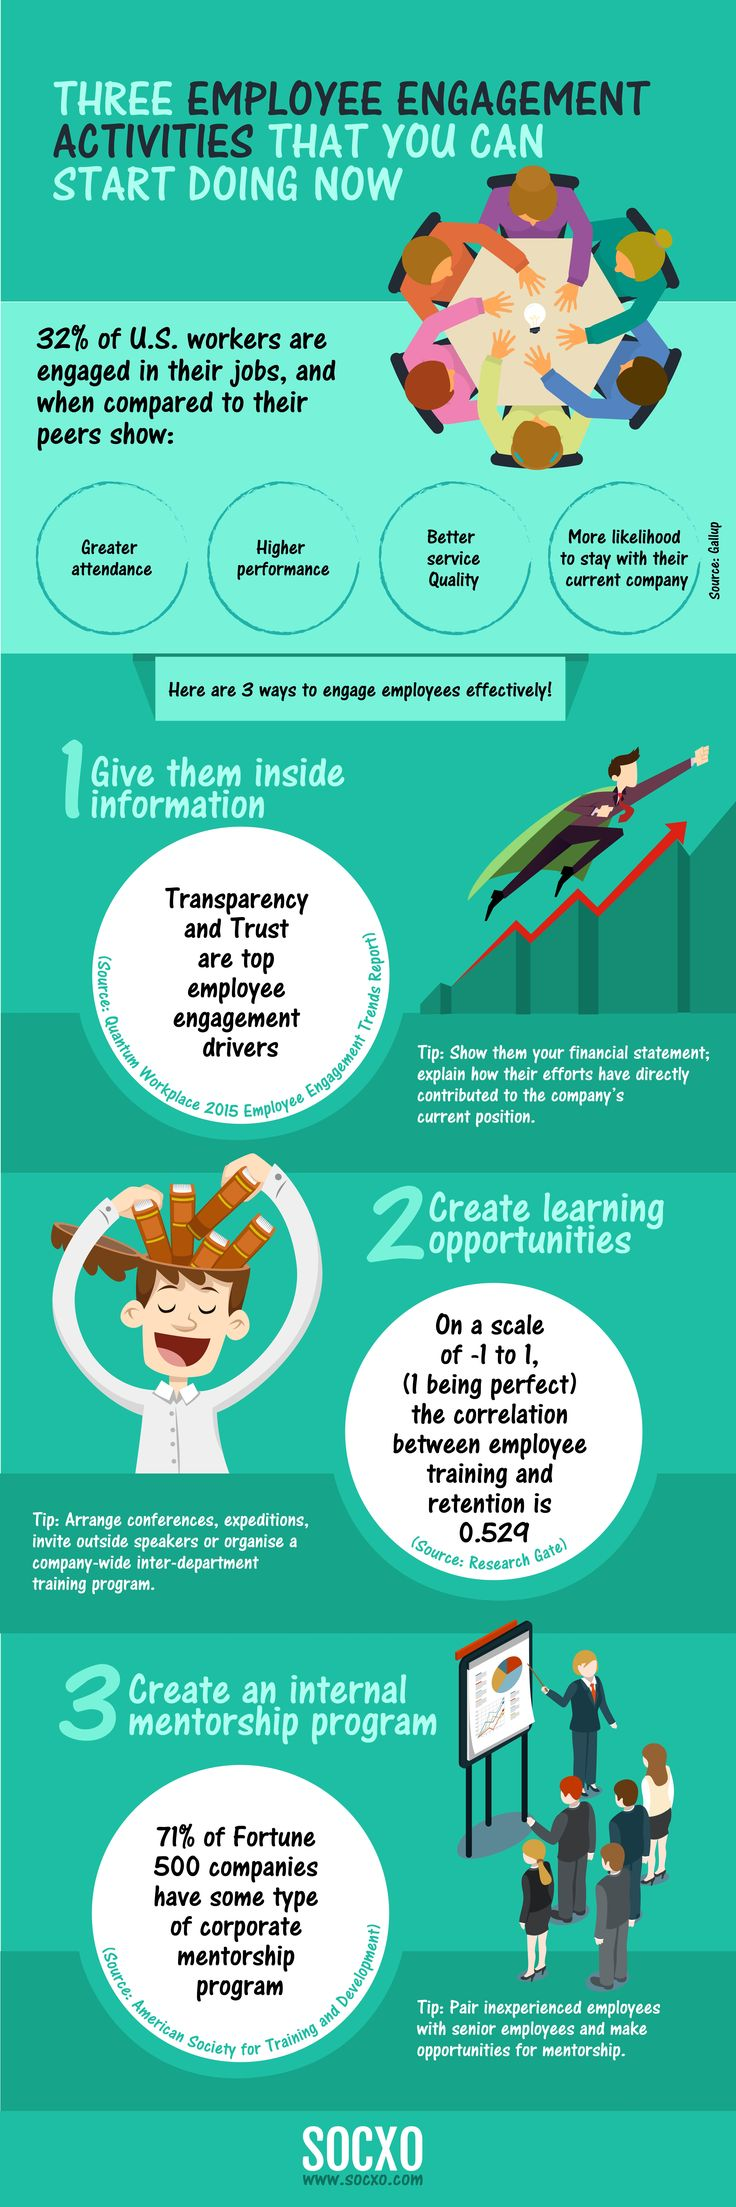 Here is an infographic on Three Employee Engagement Activities That You Can Start Doing Now.  #EmployeeEngagement #employeeadvocacy #SOCXO